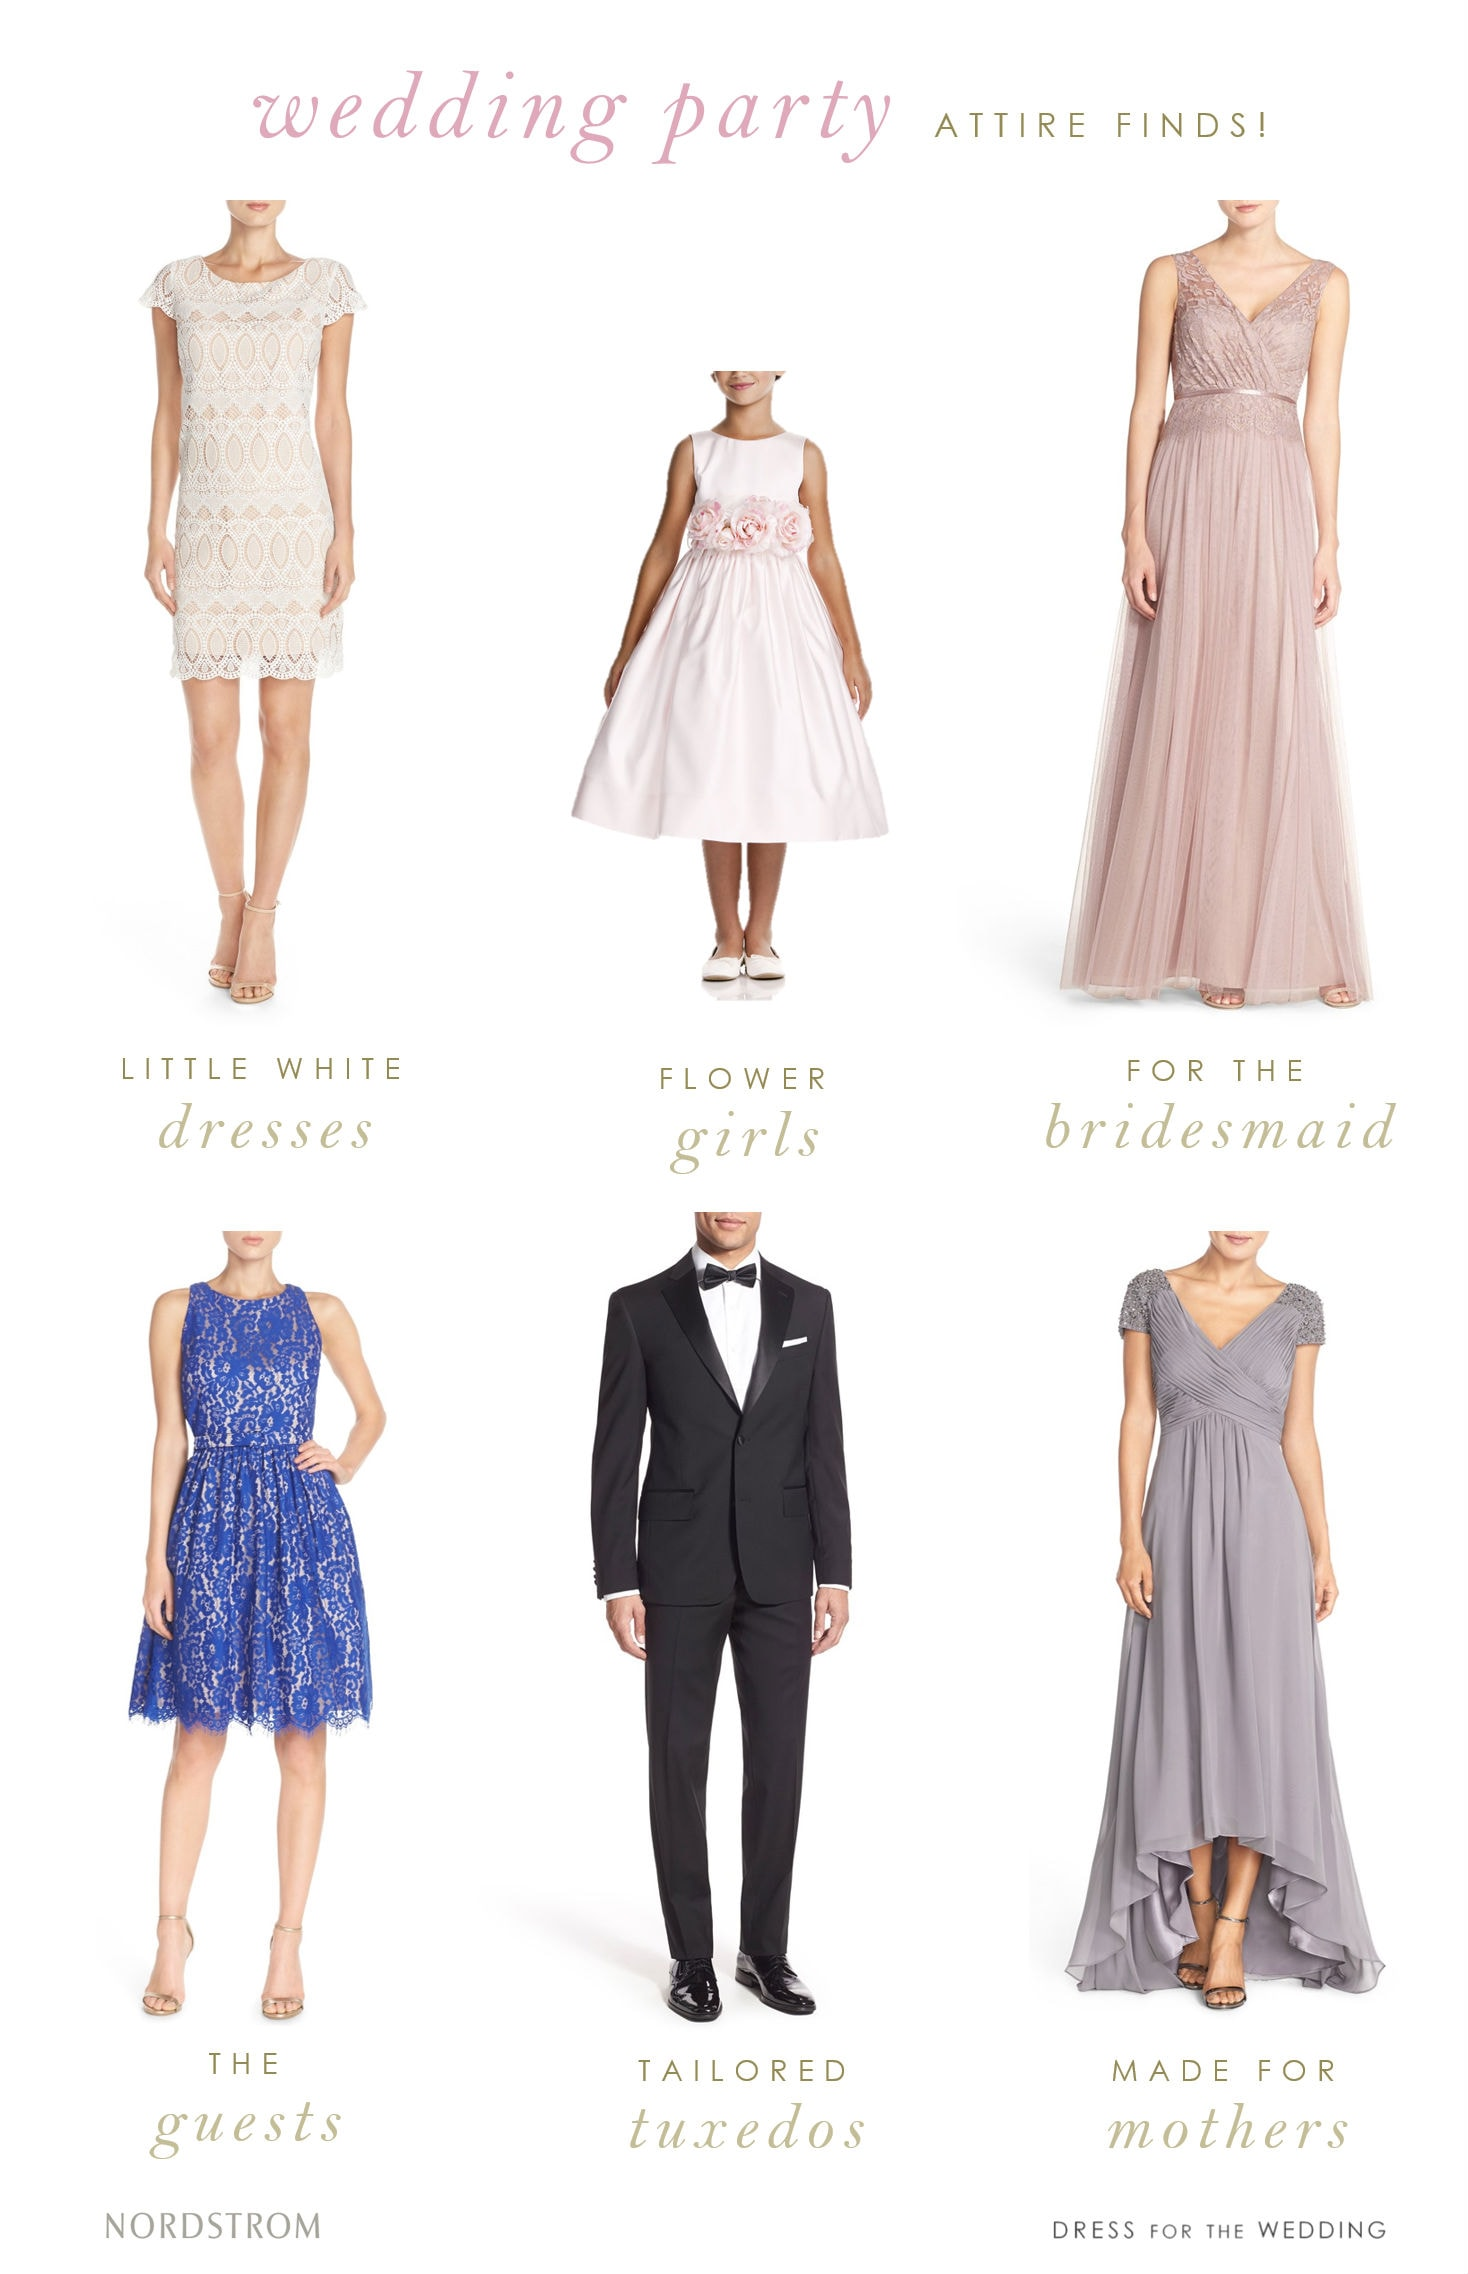 Where to find pretty wedding attire | Nordstrom Weddings